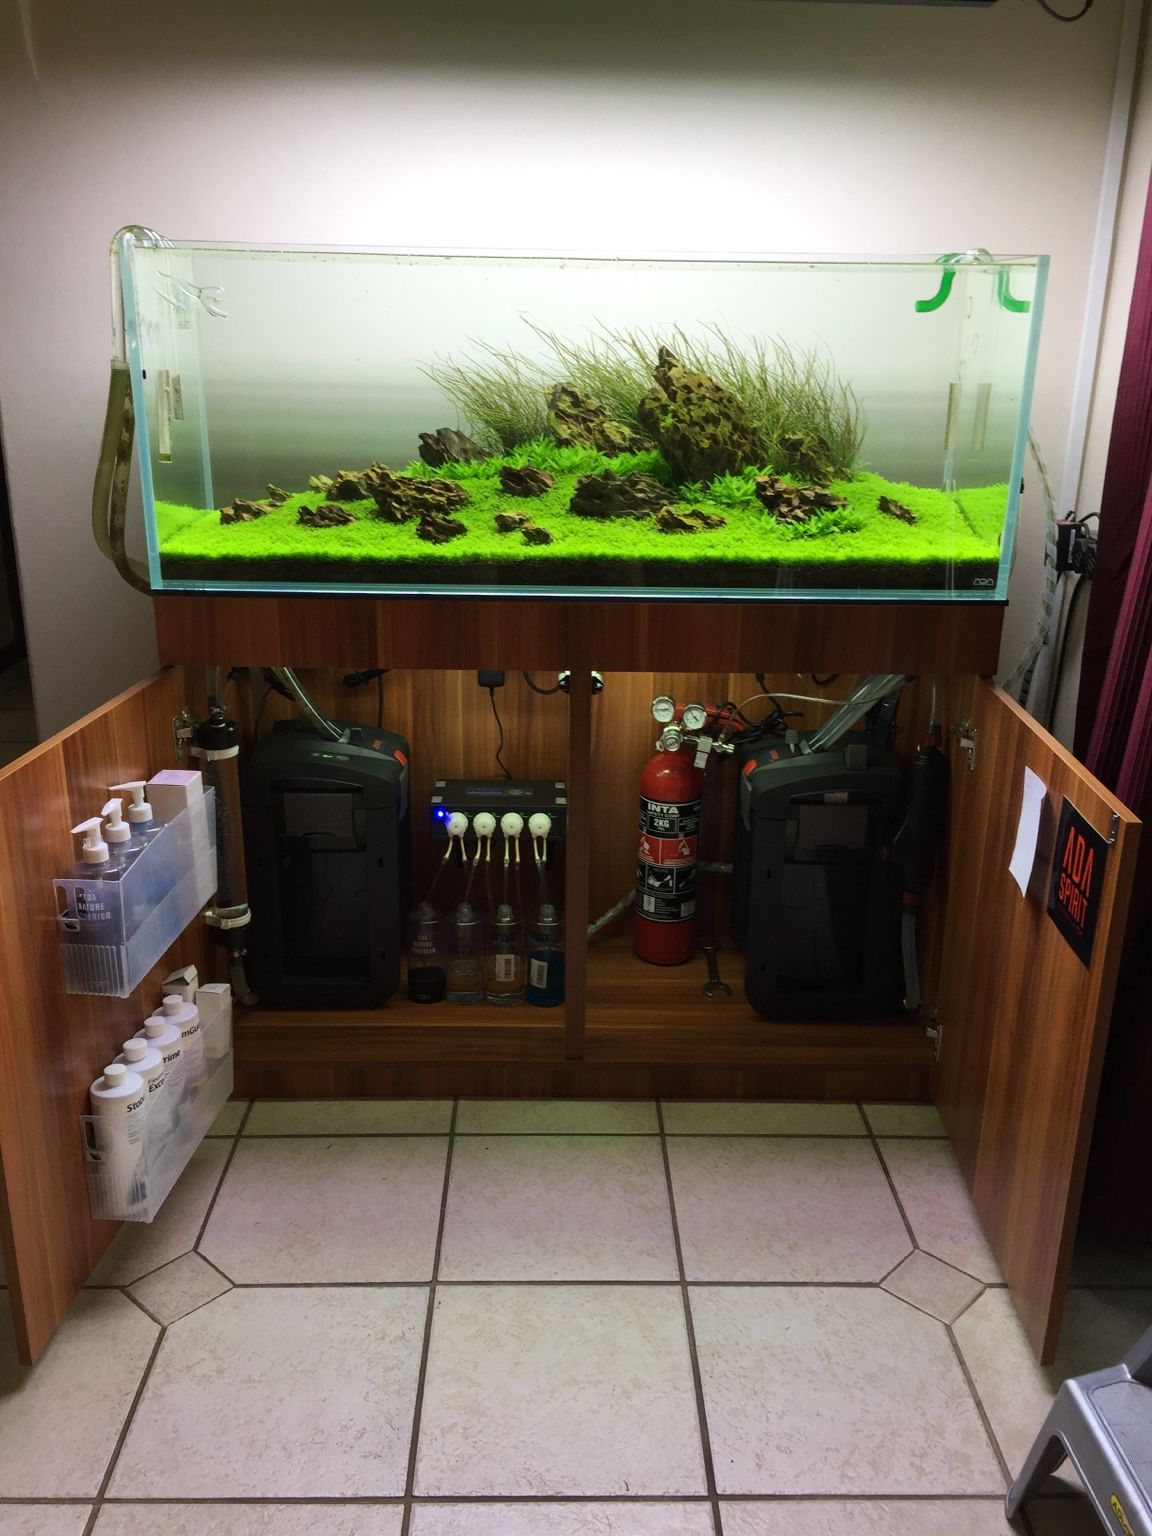 Freshwater aquarium fish for sale online uk - 25 Best Ideas About Aquariums Uk On Pinterest Aquarium Ideas Aquarium Aquascape And Aqua Aquarium